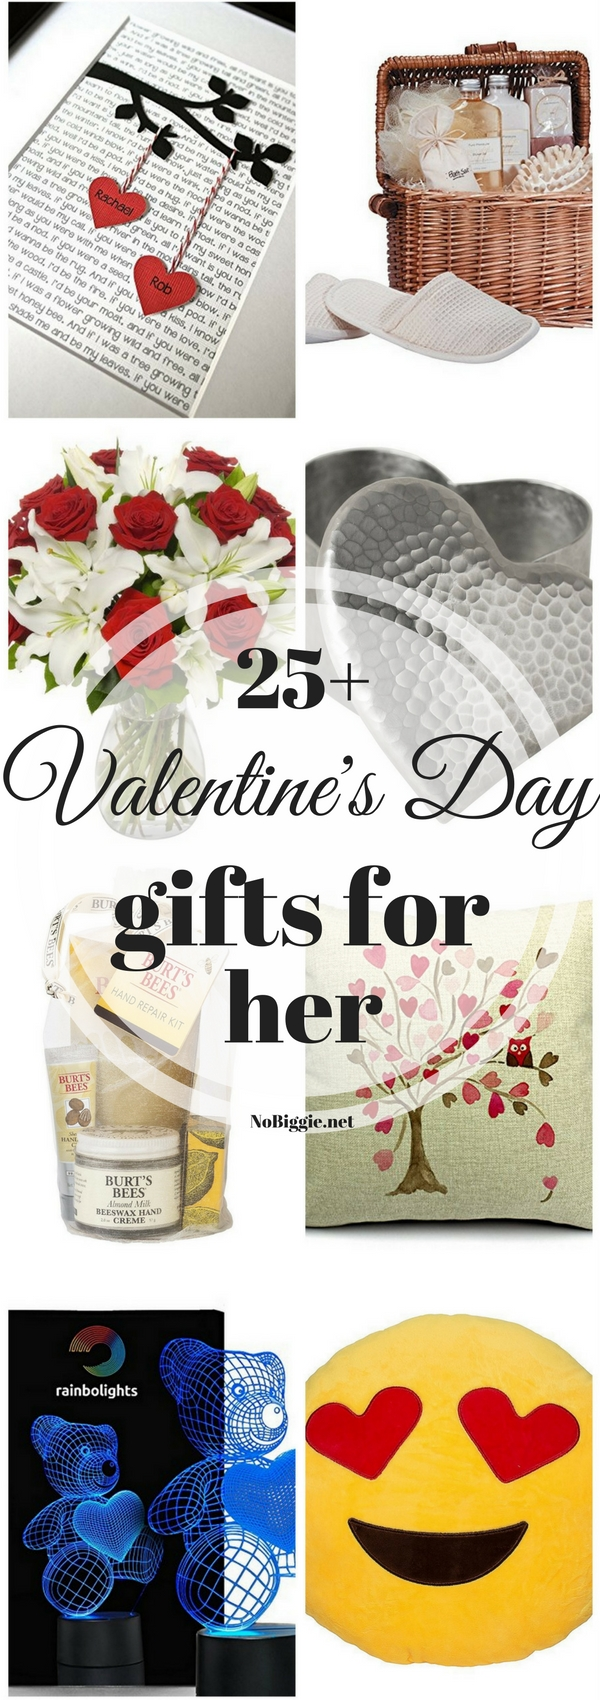 25+ Valentine's Day gifts for her